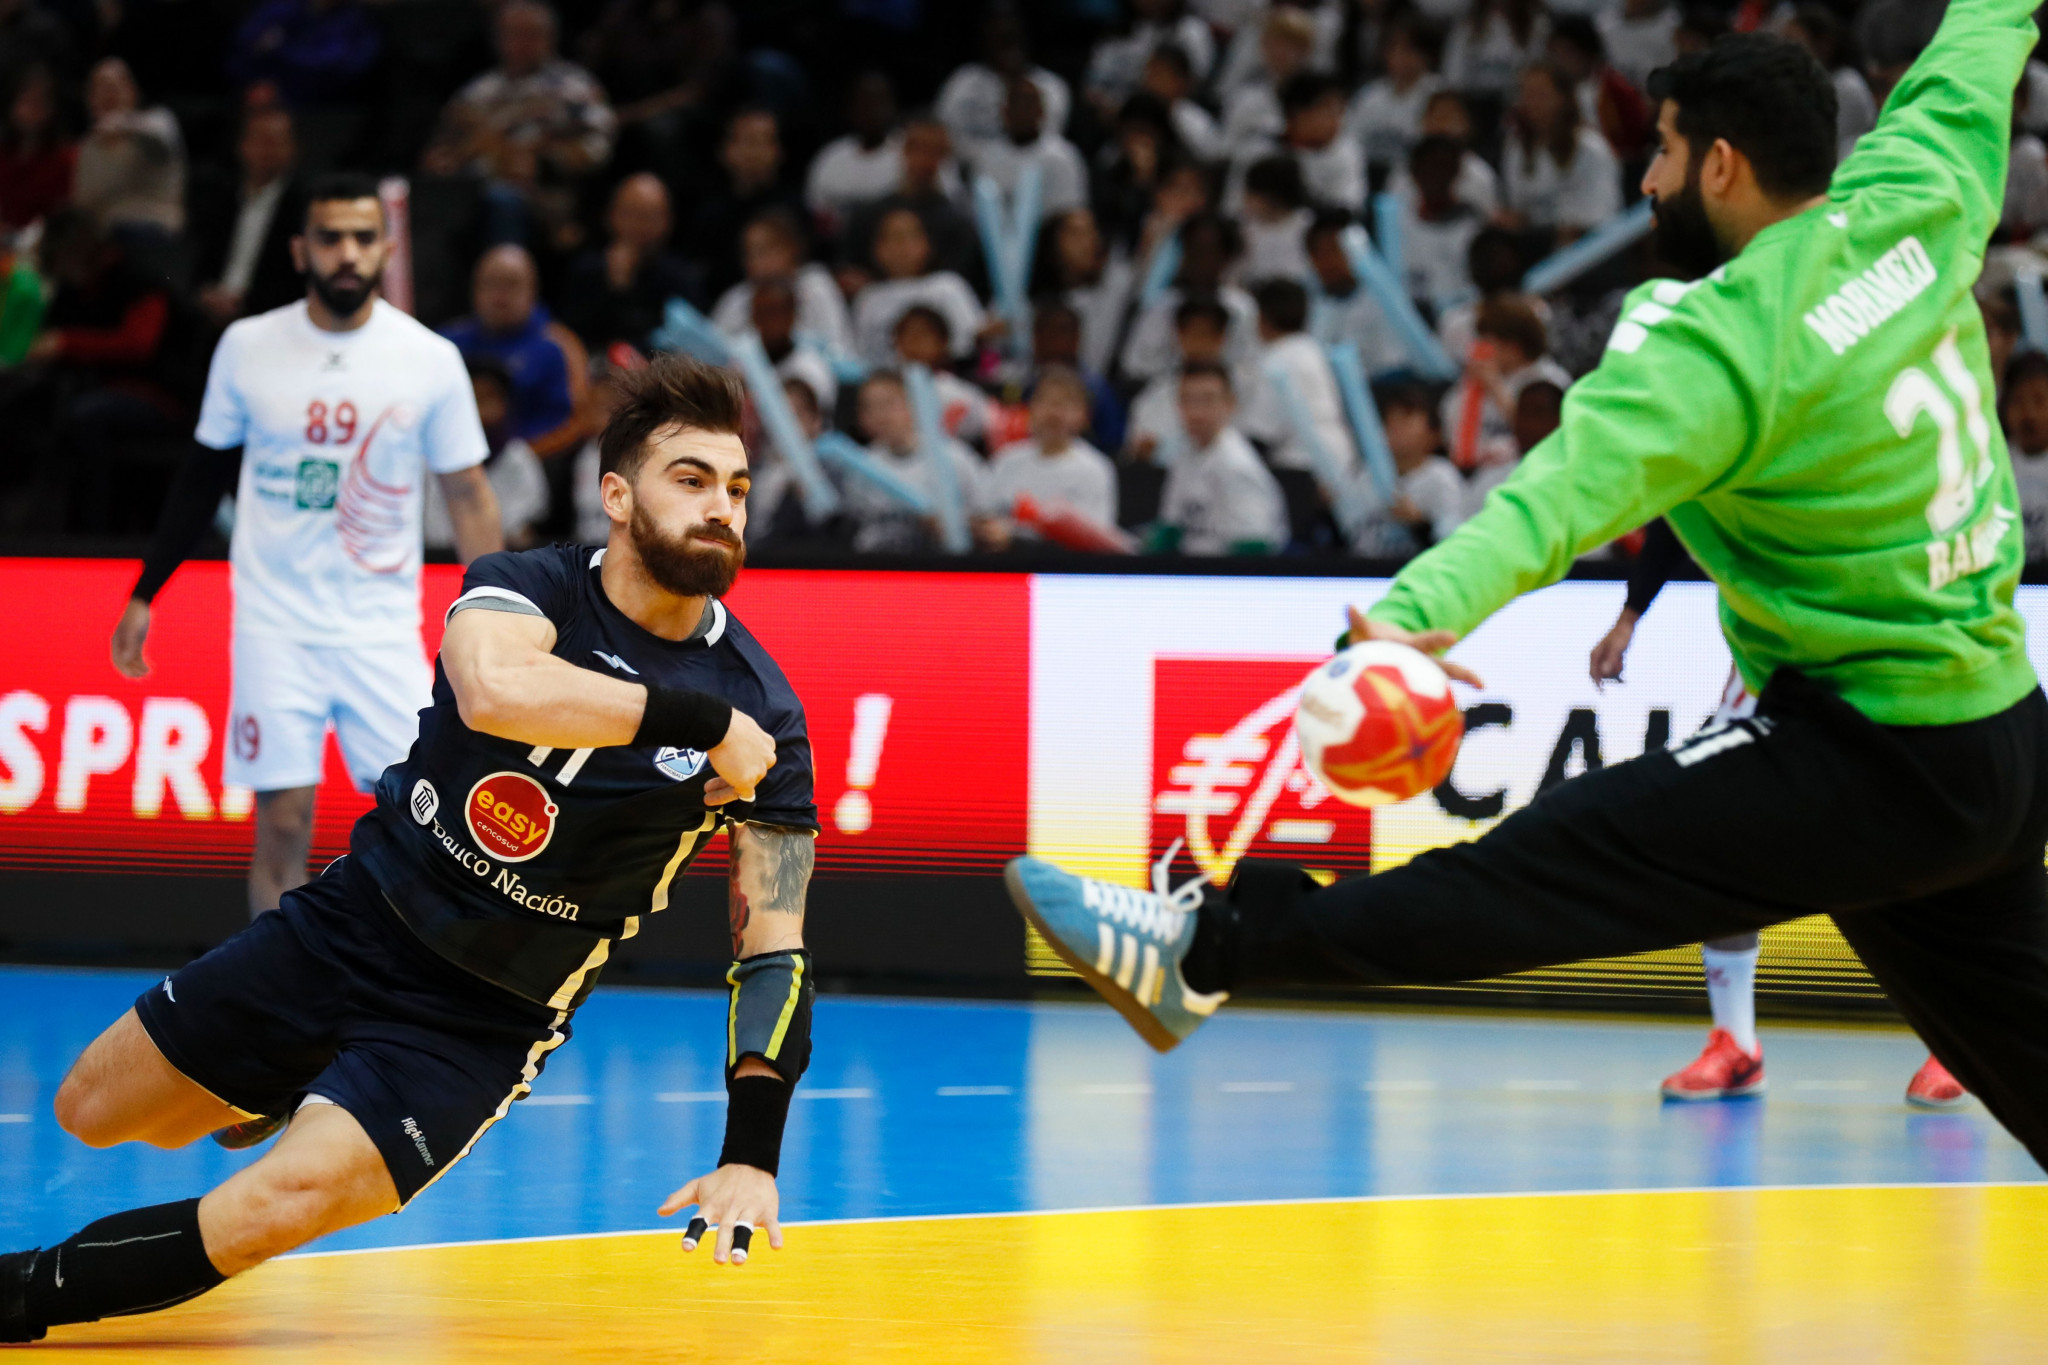 Argentina beat Chile to top spot in Group A at Pan American Men's Handball Championship